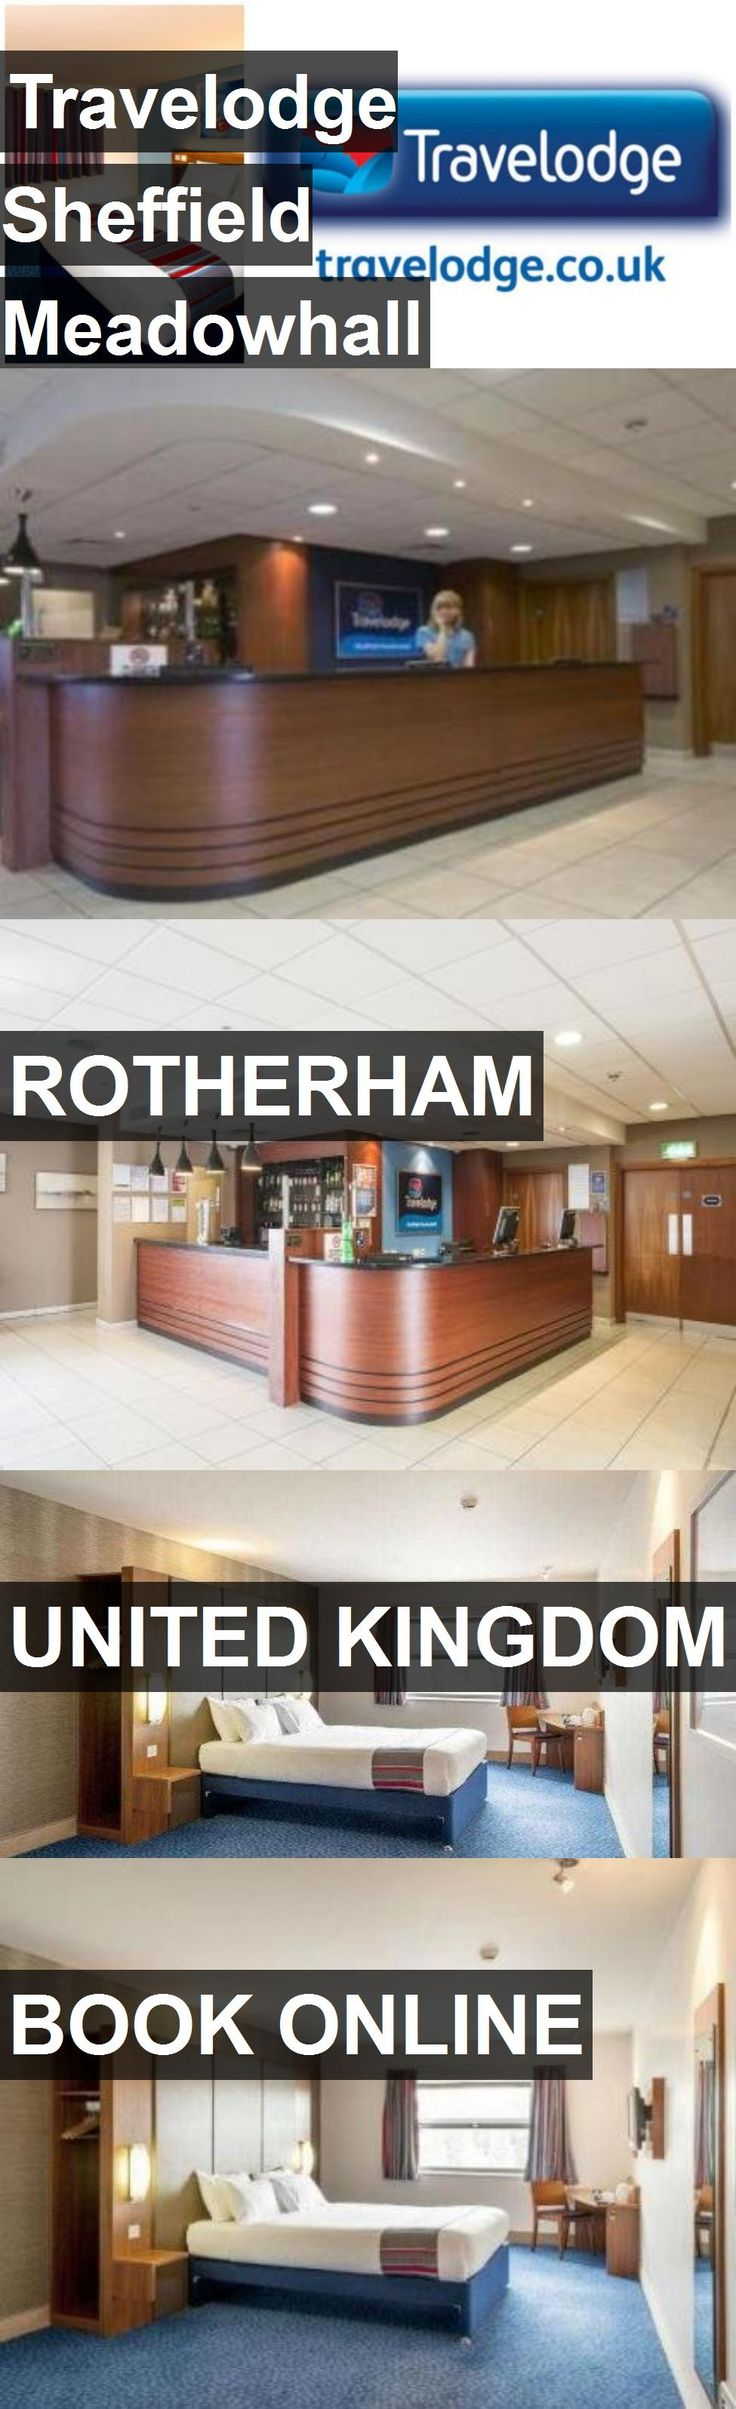 Hotel Travelodge Sheffield Meadowhall in Rotherham, United Kingdom. For more information, photos, reviews and best prices please follow the link. #UnitedKingdom #Rotherham #travel #vacation #hotel